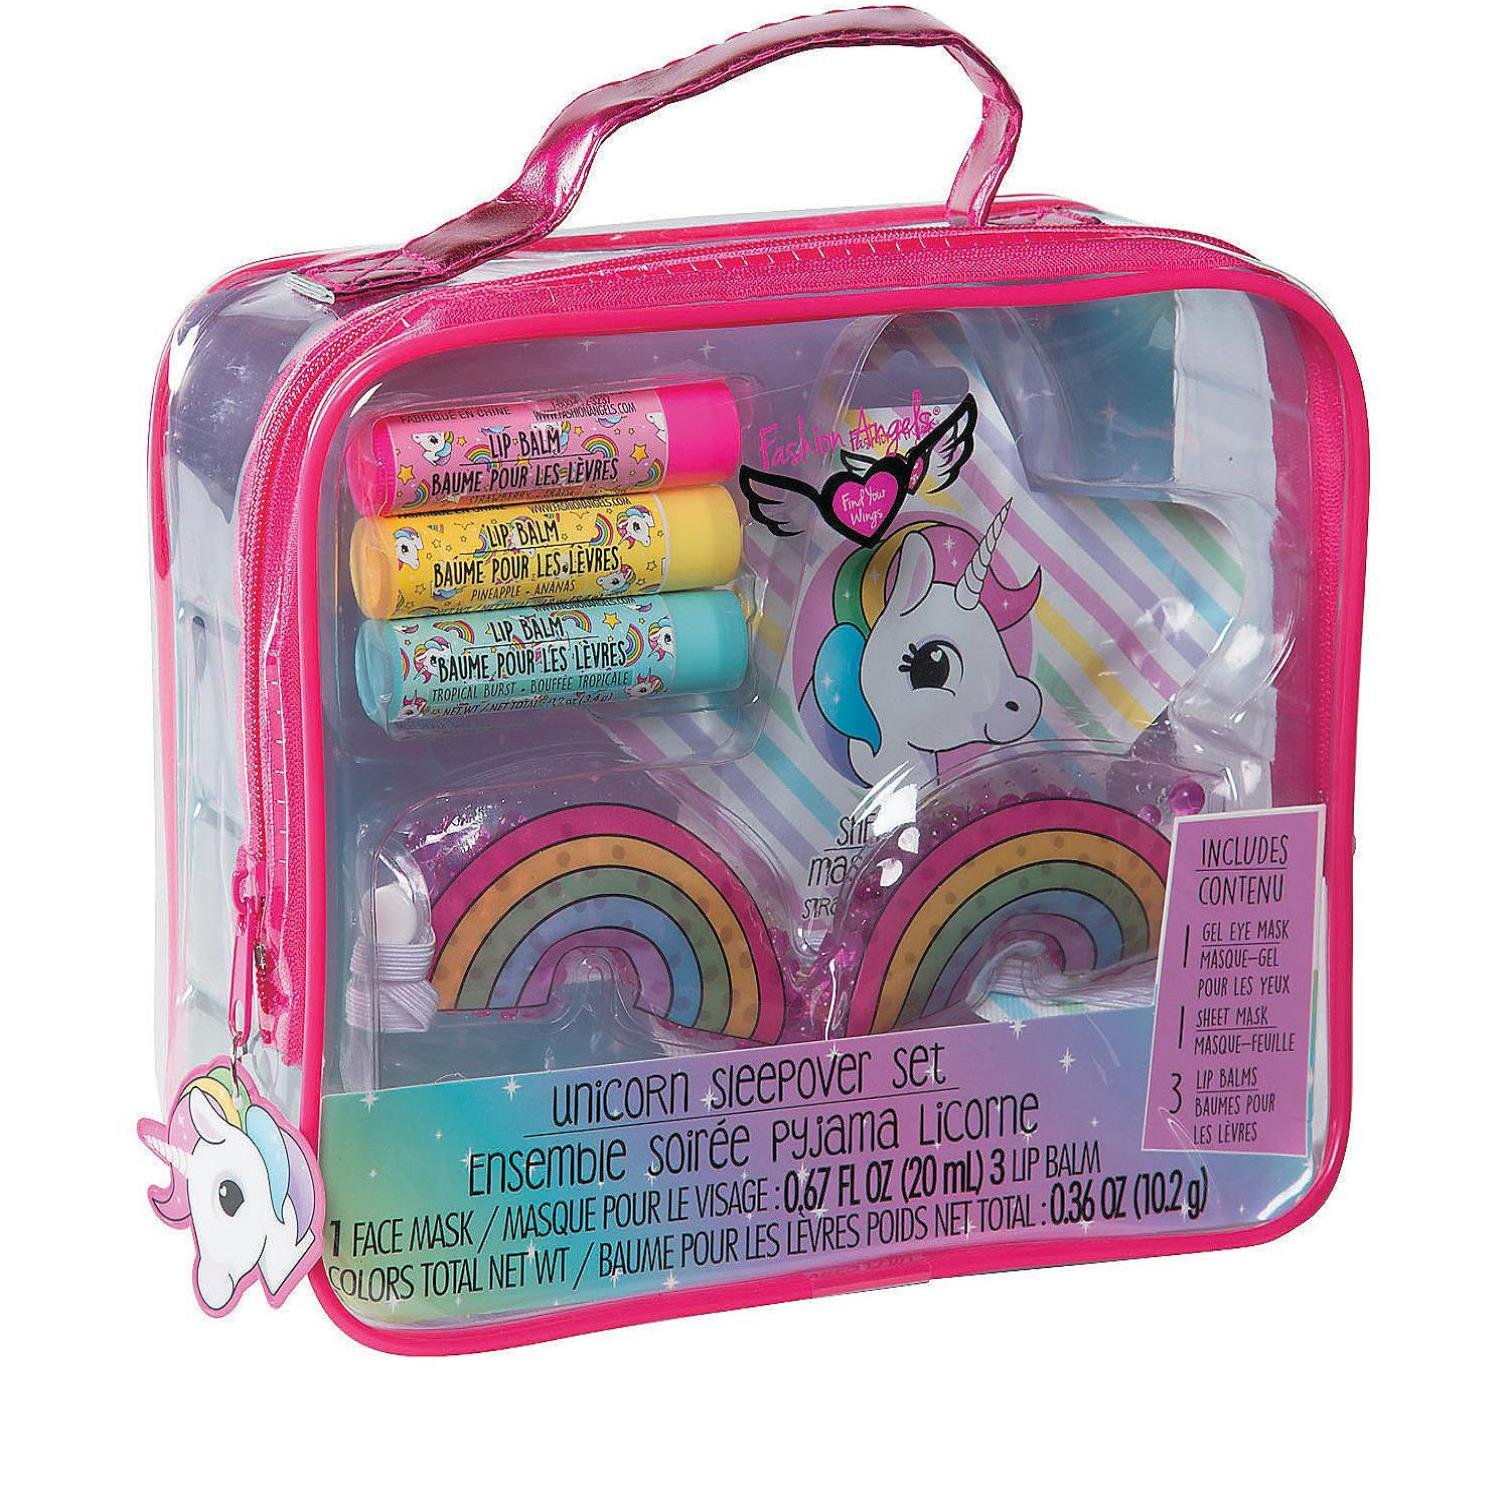 Amazon.com: Bargain World Unicorn Sleepover Set (With Sticky Notes): Home & Kitchen